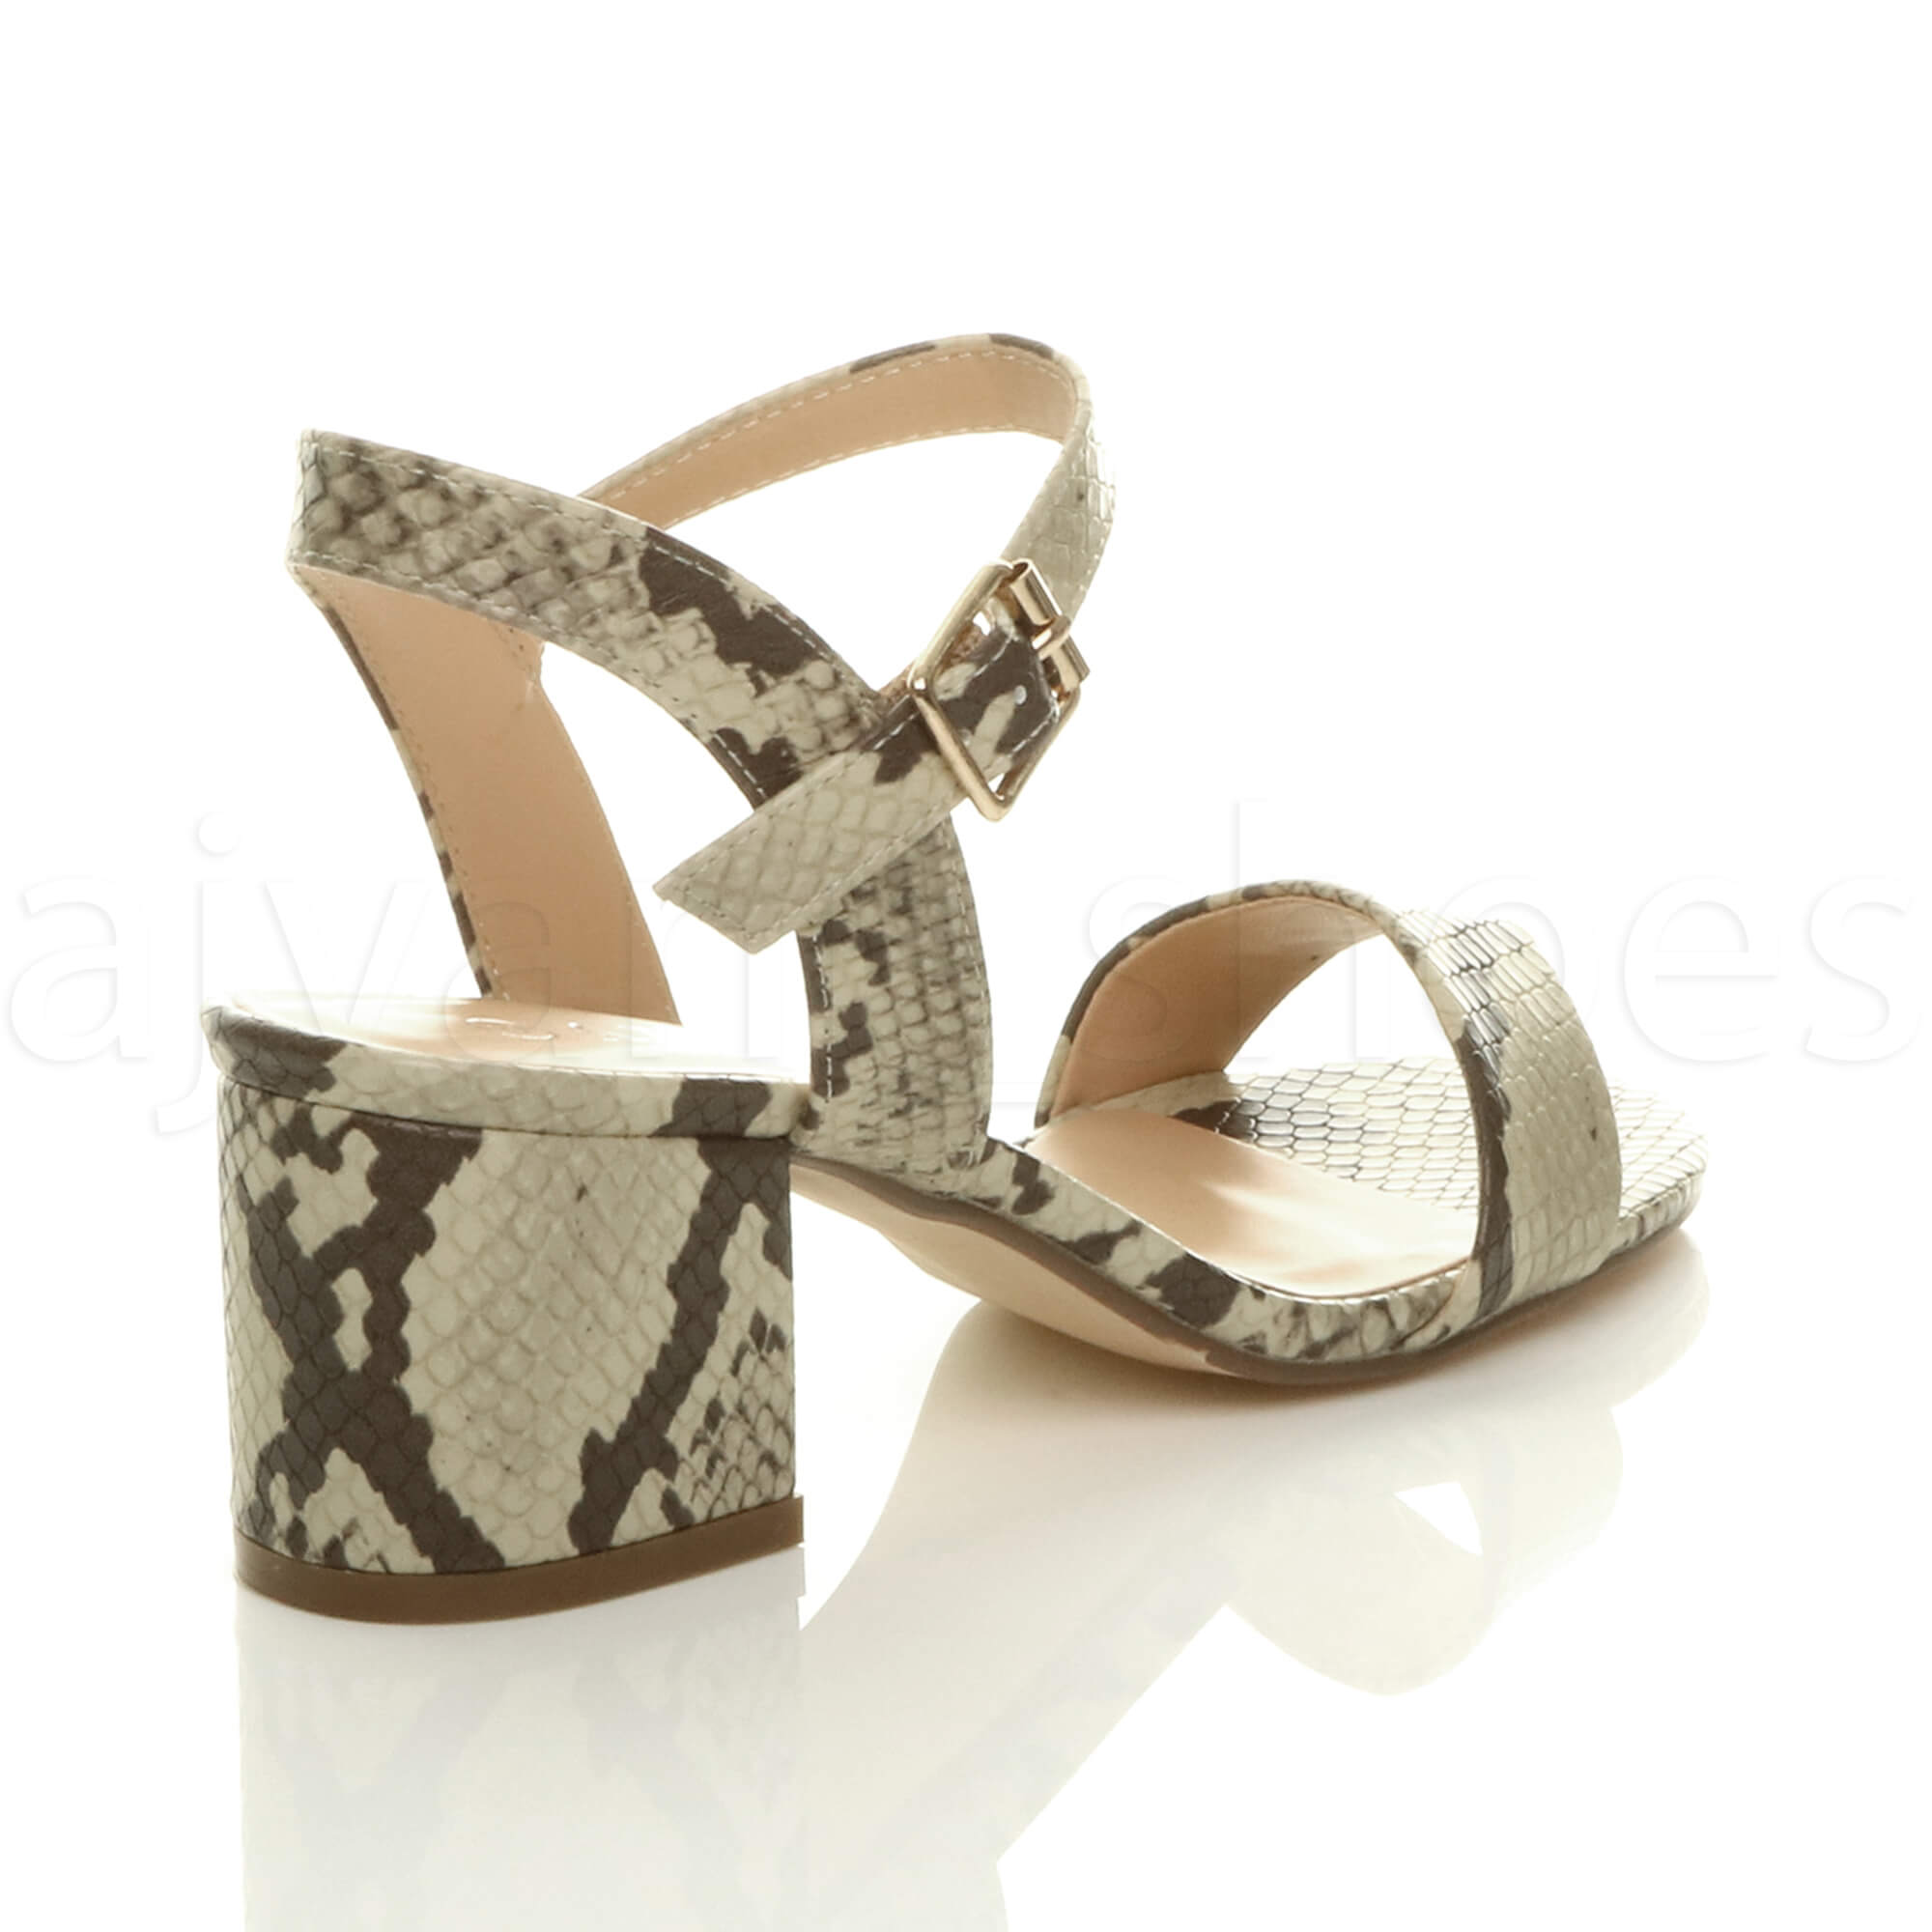 WOMENS-LADIES-MID-LOW-BLOCK-HEEL-PEEP-TOE-ANKLE-STRAP-STRAPPY-PARTY-SANDALS-SIZE thumbnail 5